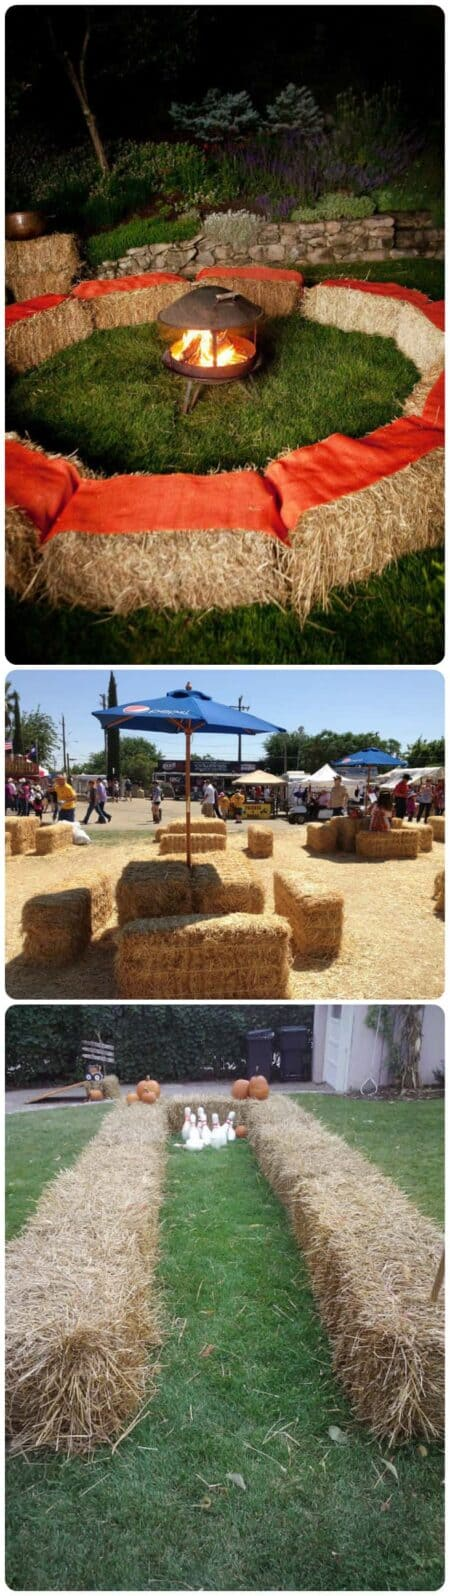 18 Ways to Use Straw Bales for a Shabby Chic Wedding/Garden Party 17 - Patio & Outdoor Furniture